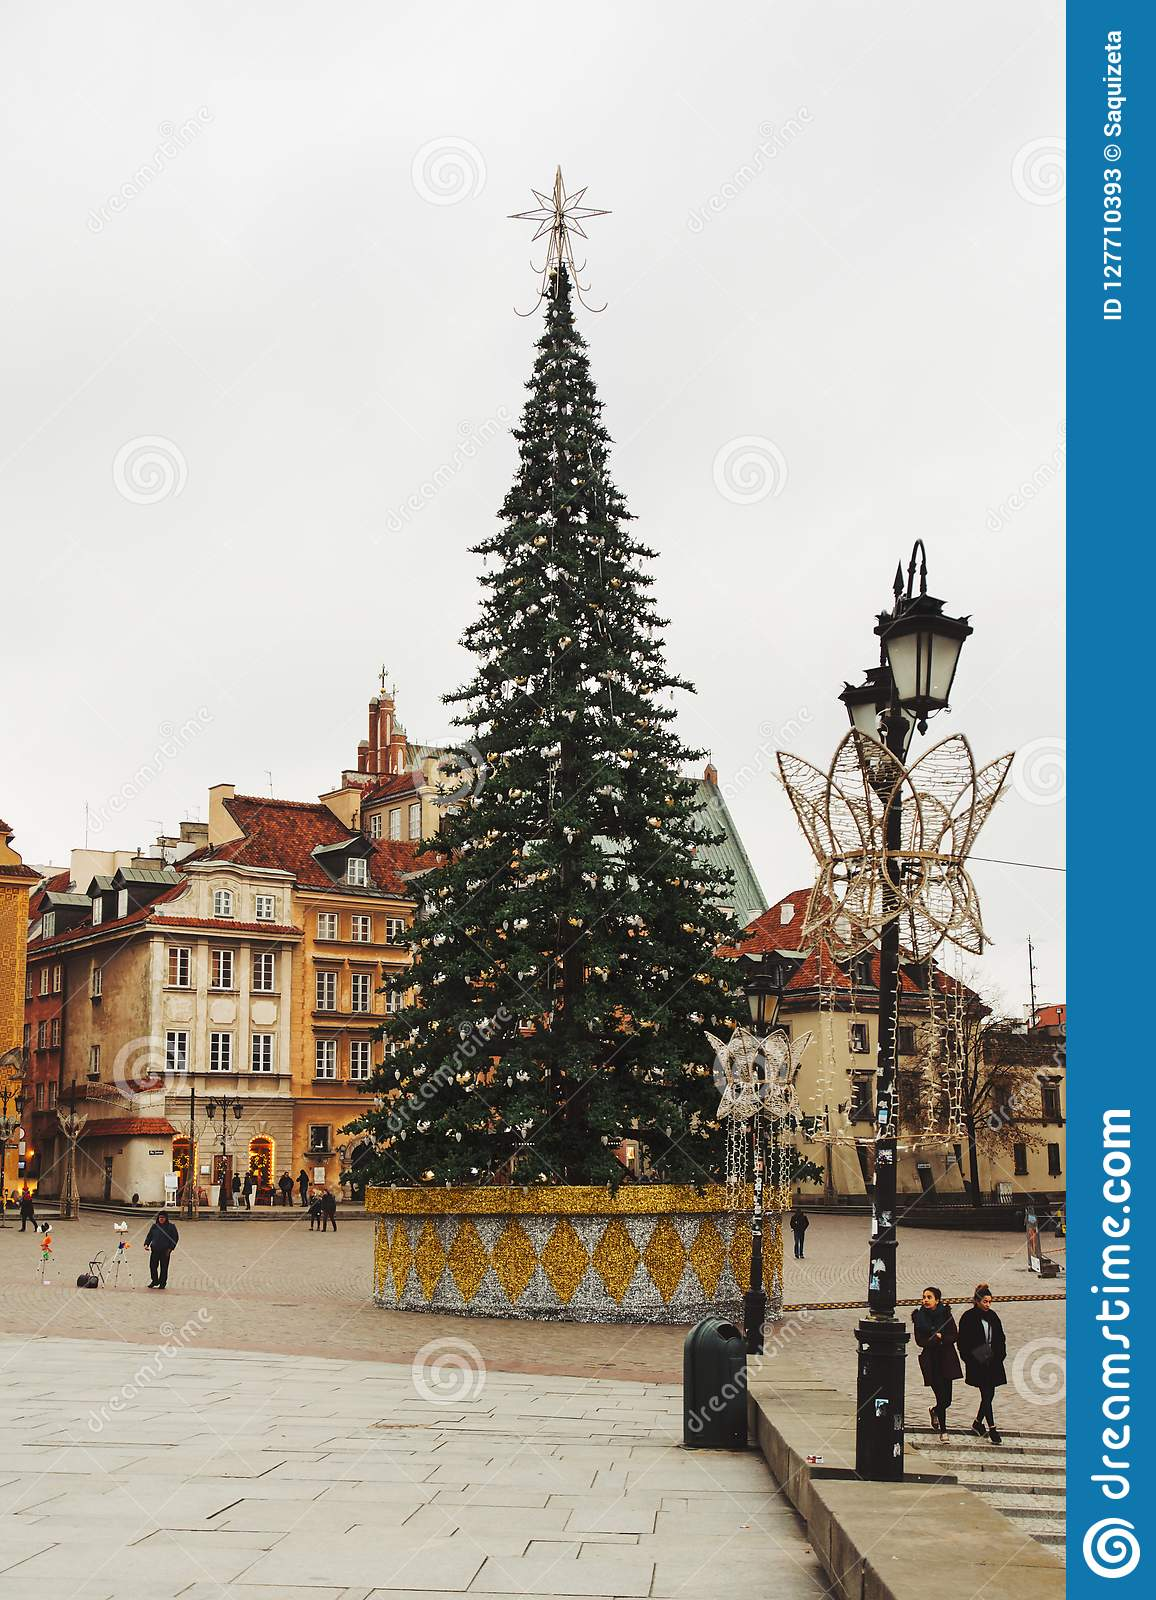 Christmas tree in Castle Square. Plac Zamkowy Stare Miasto. Wa